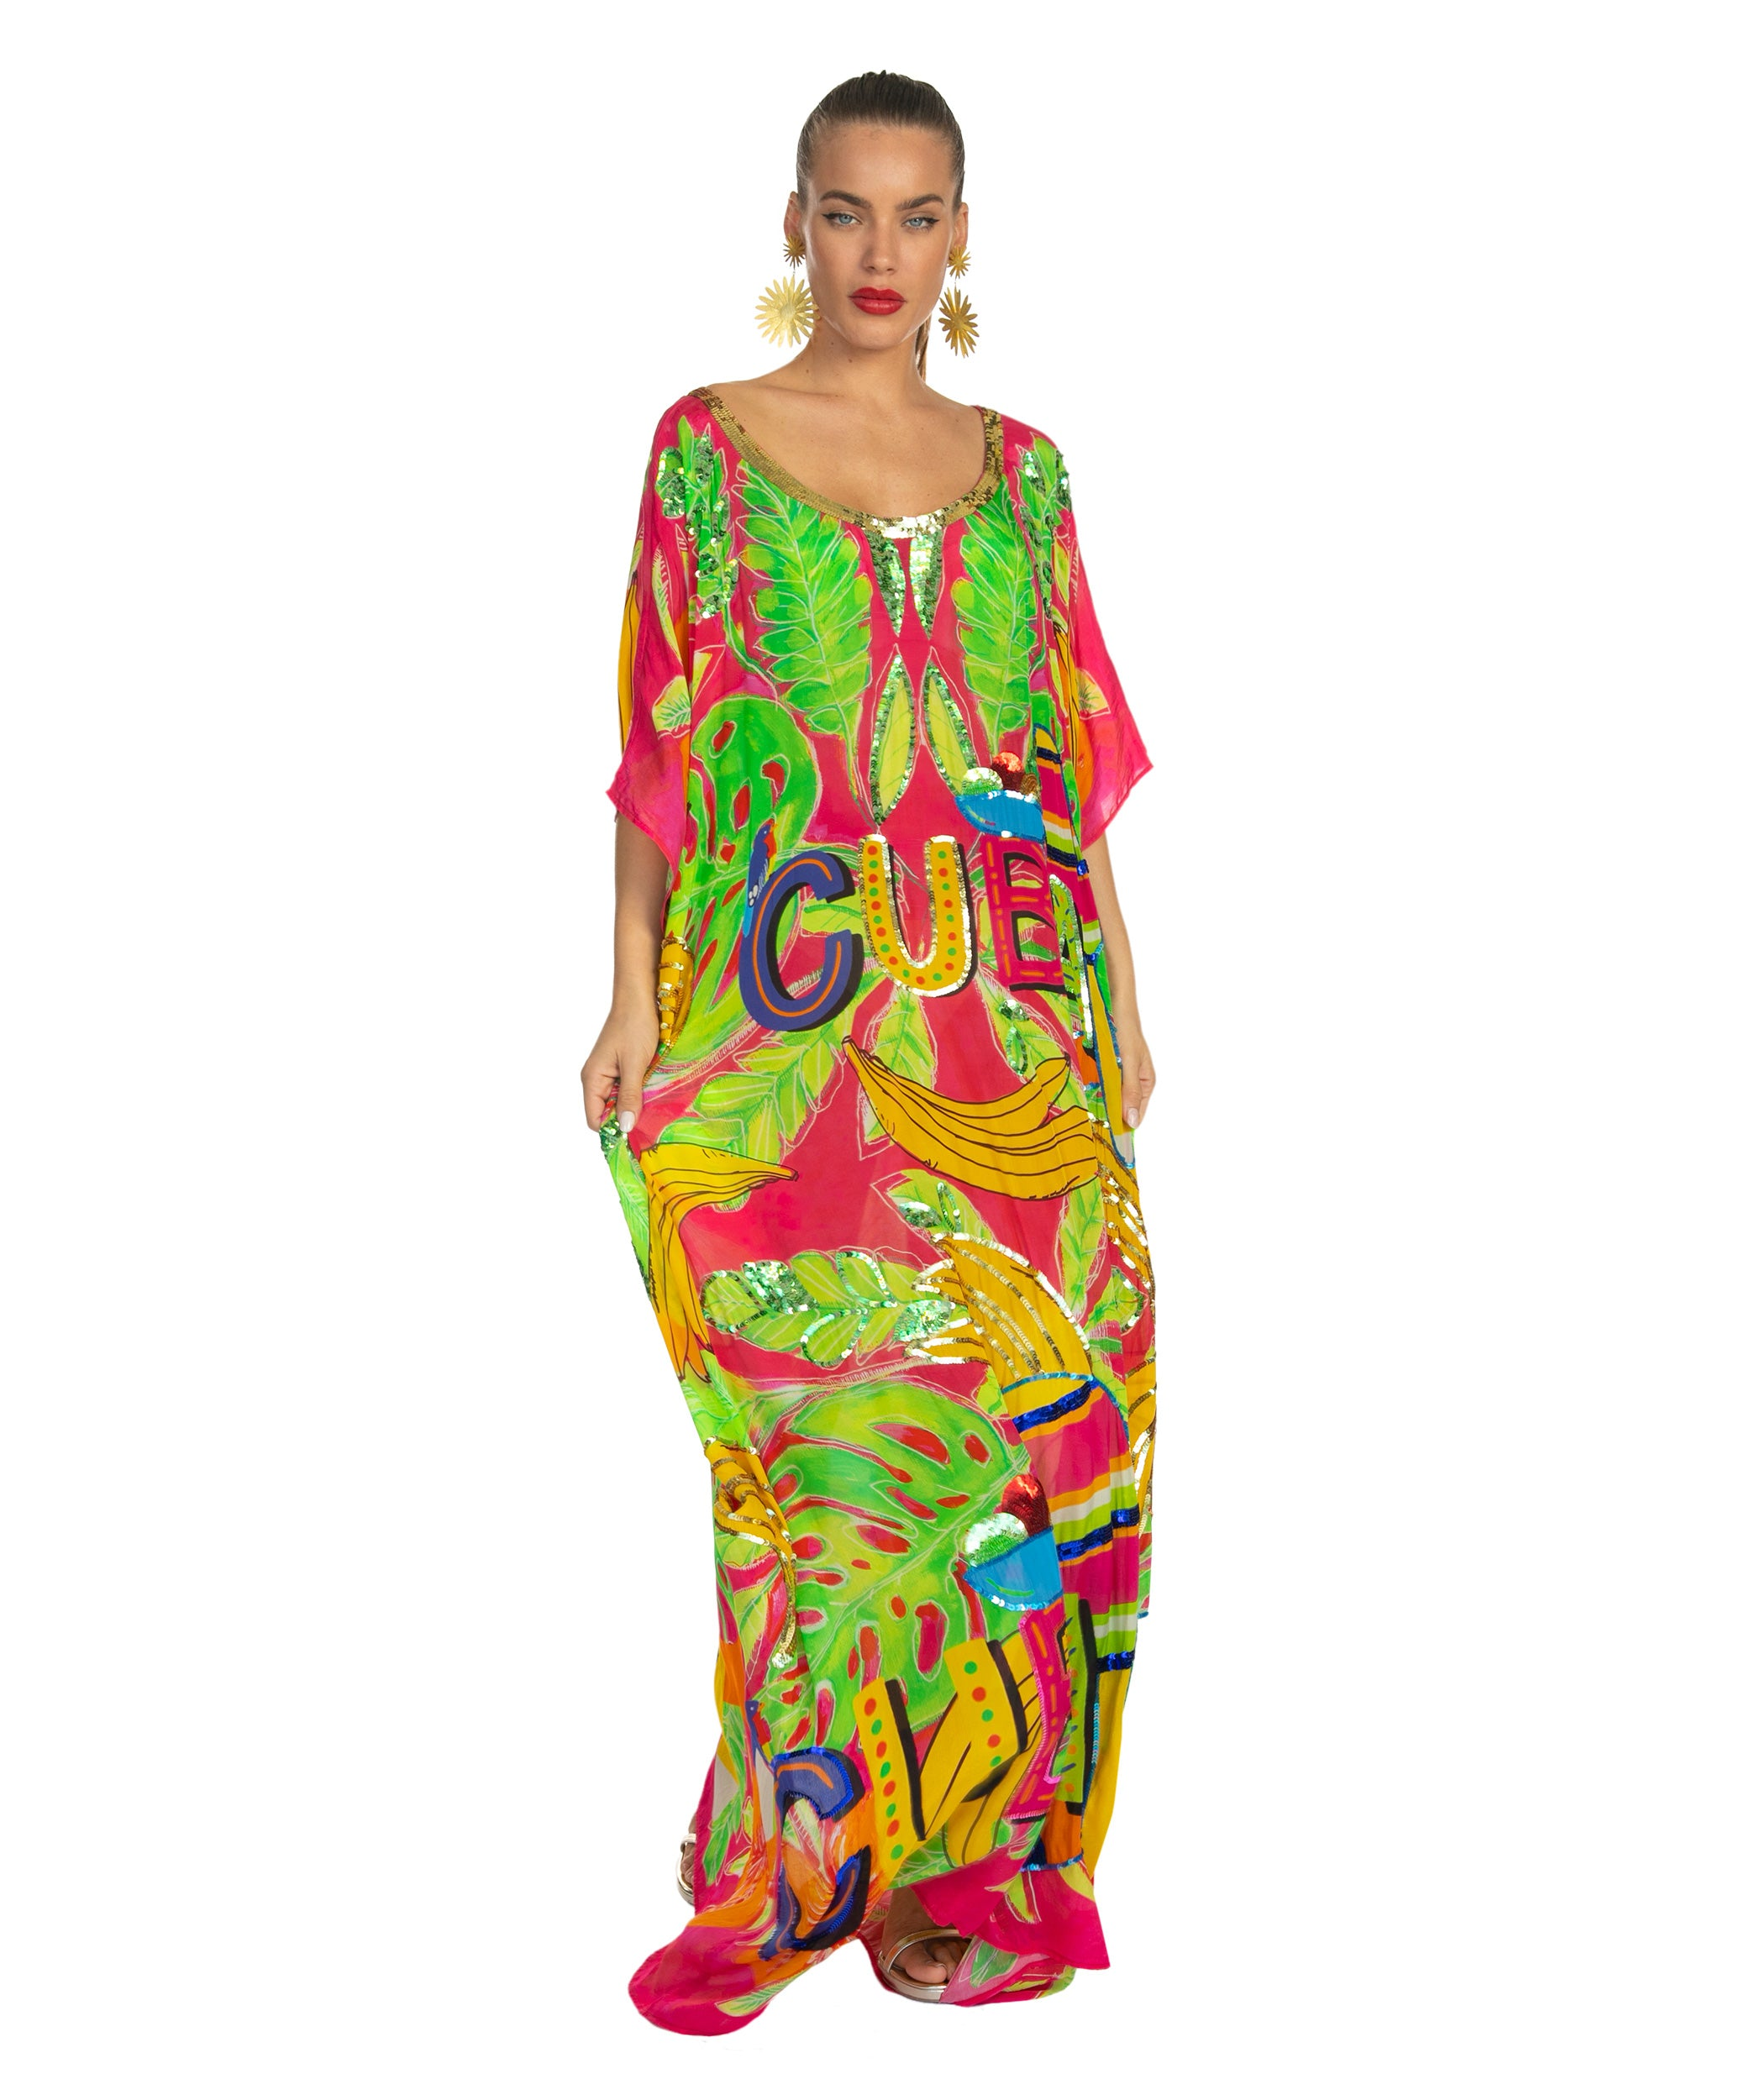 The Carnivale Kaftan